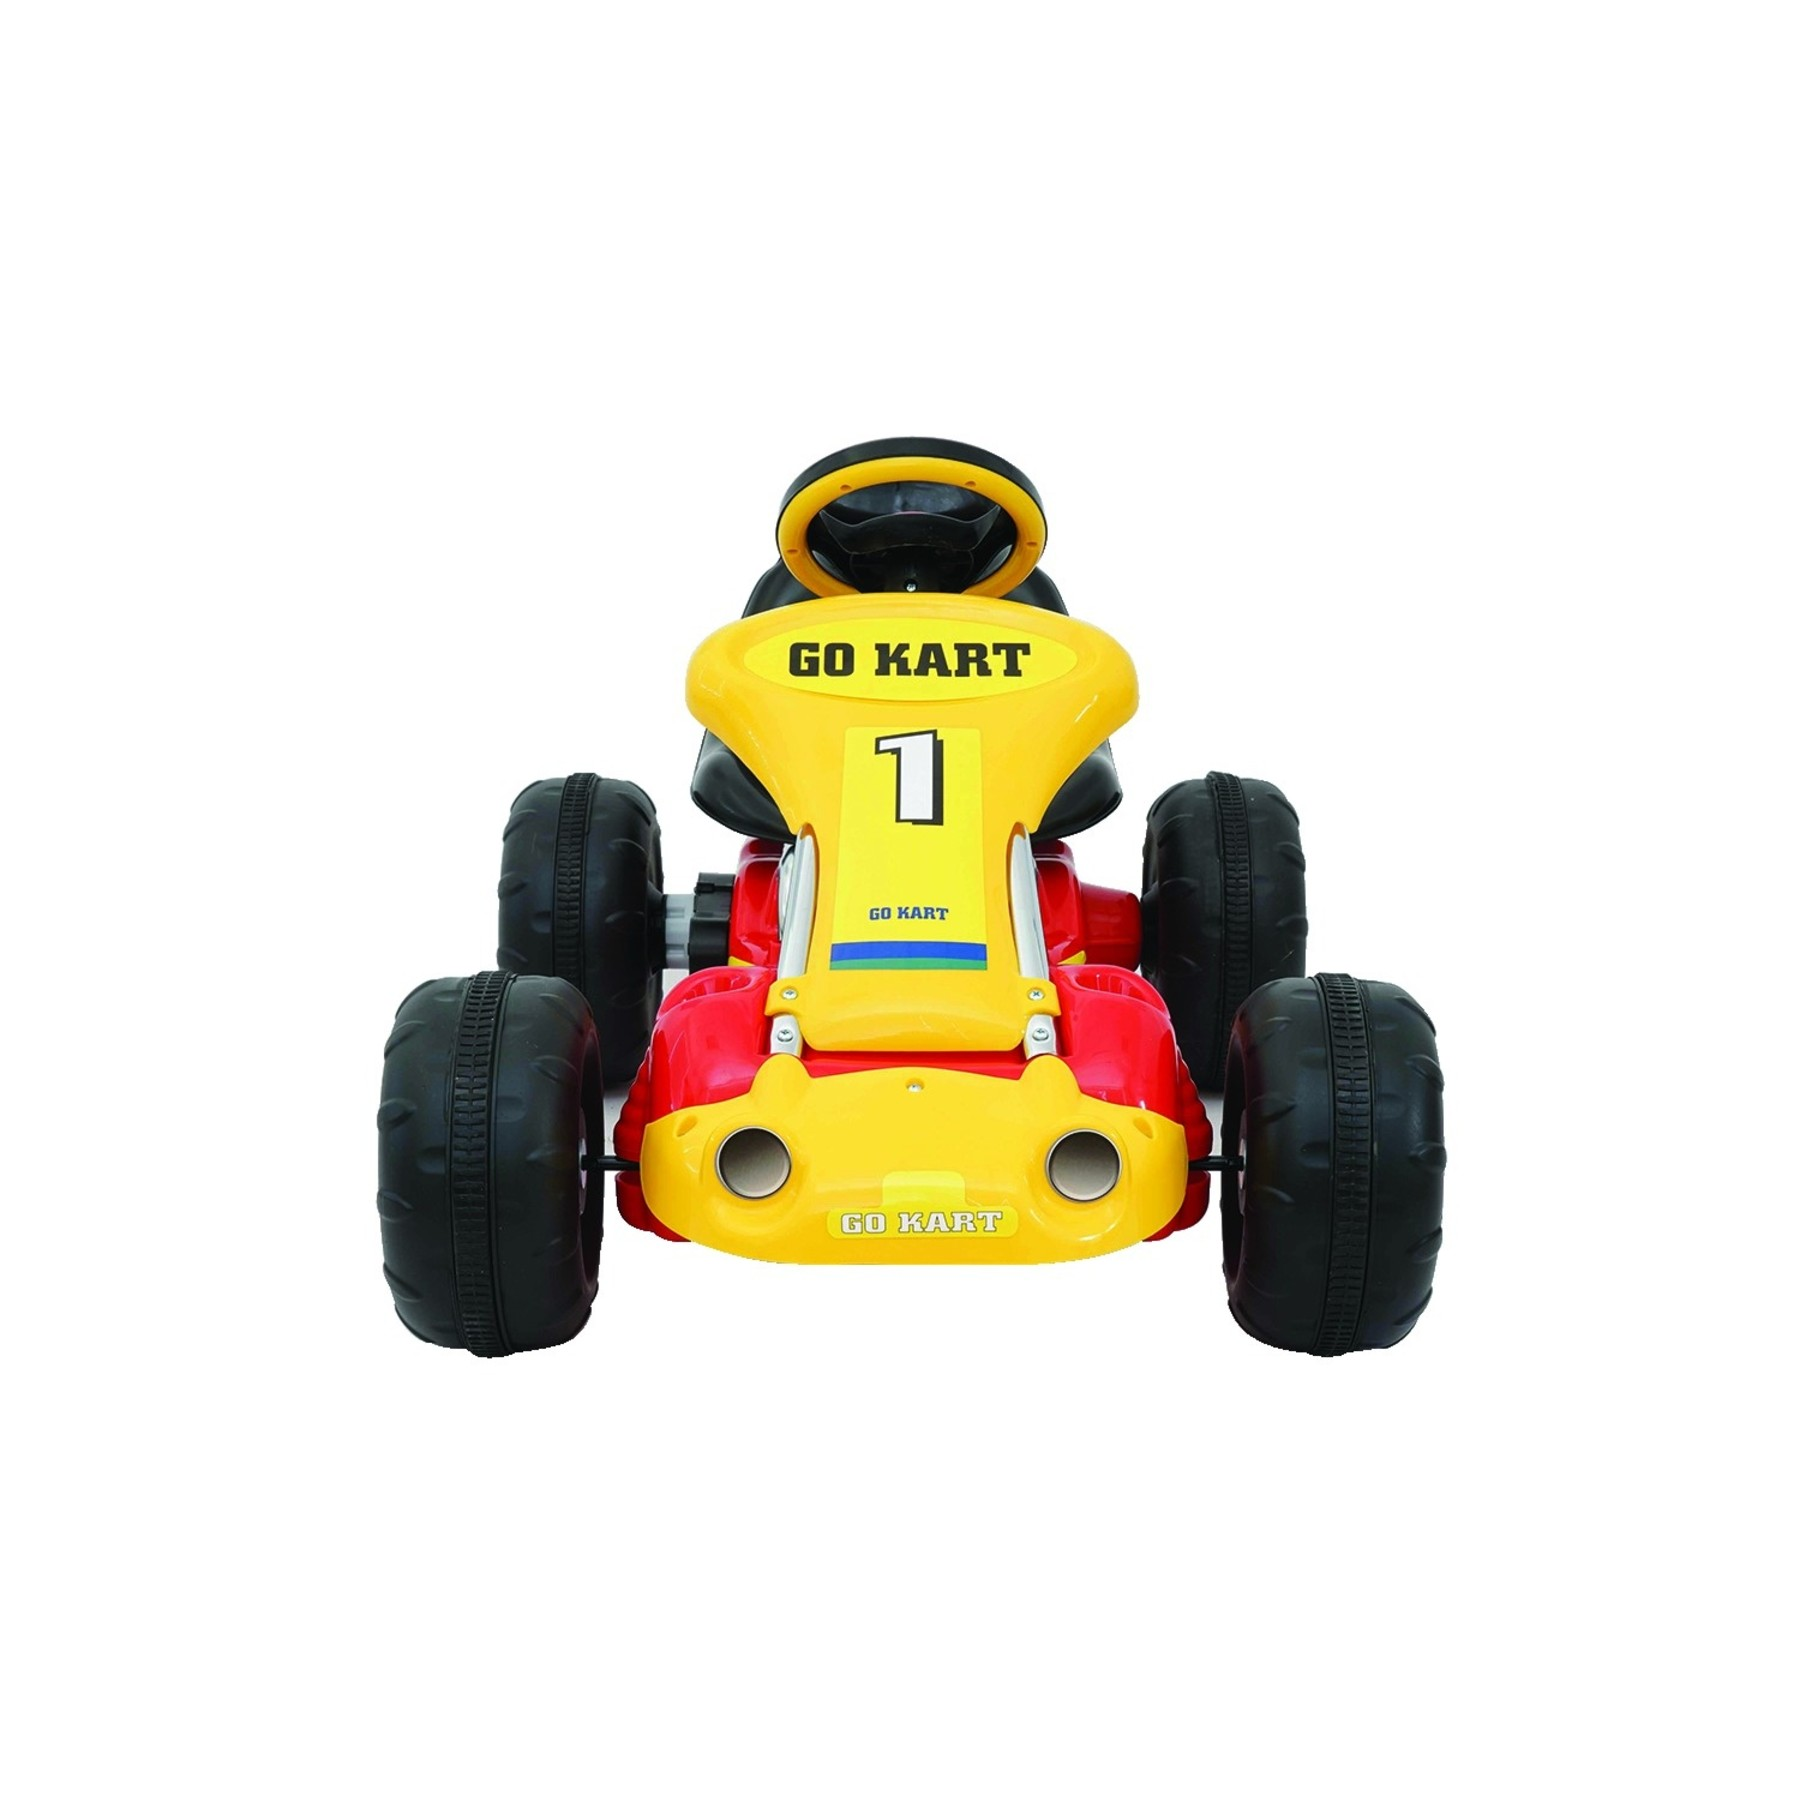 ride on kids go kart racing car 12v battery for children aged 3 7 red and yellow ebay. Black Bedroom Furniture Sets. Home Design Ideas